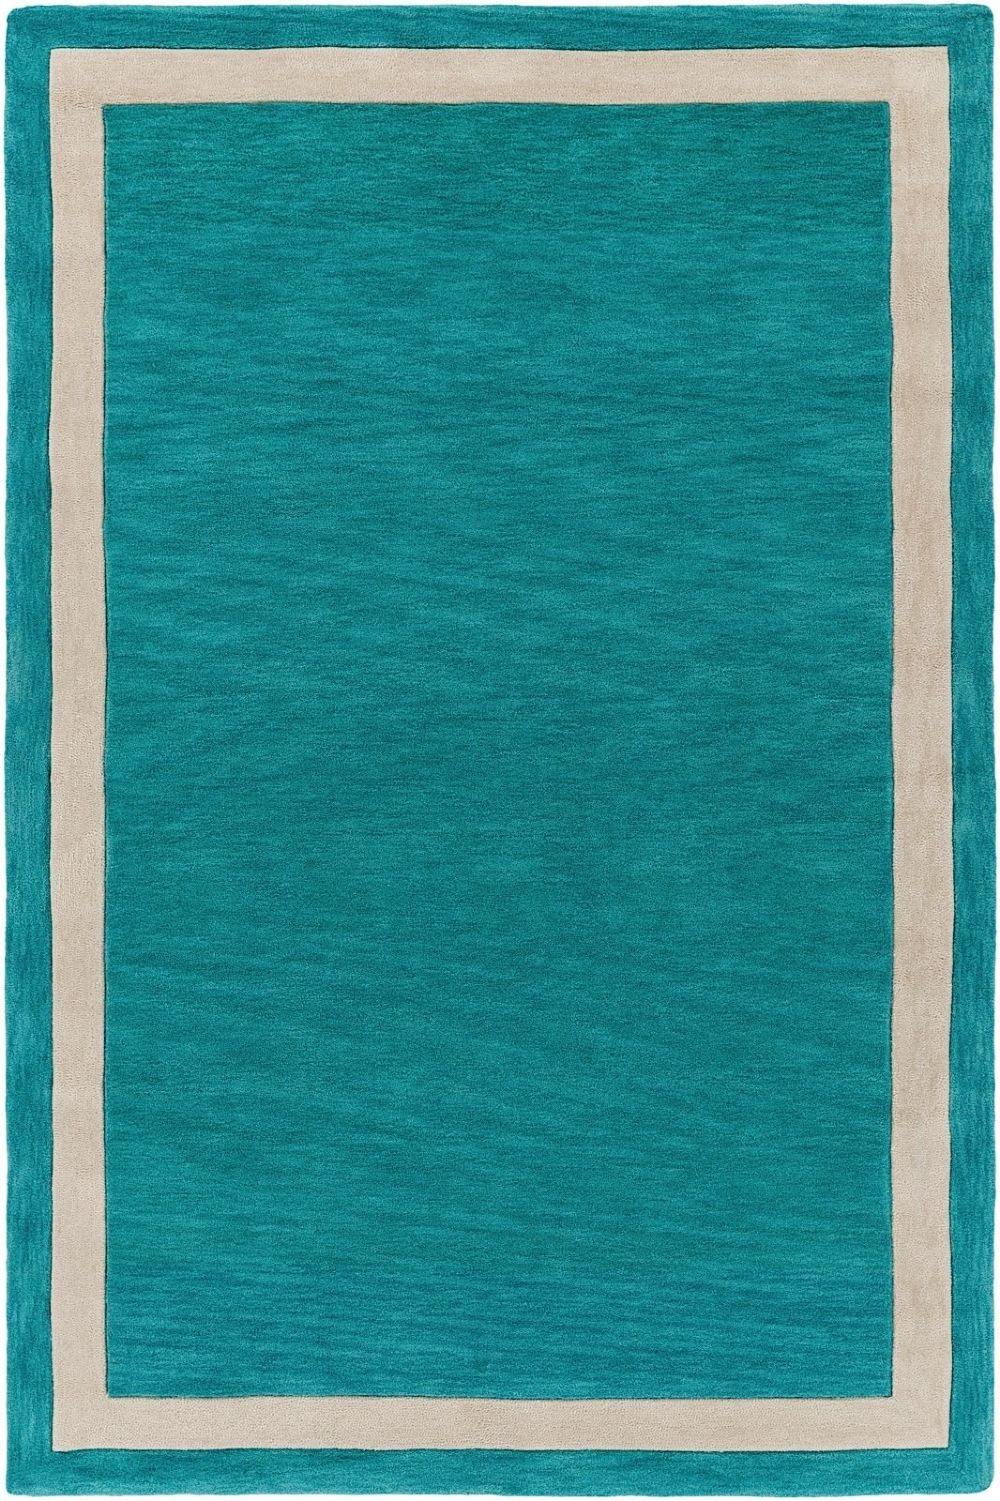 artistic weavers holden blair solid/striped area rug collection